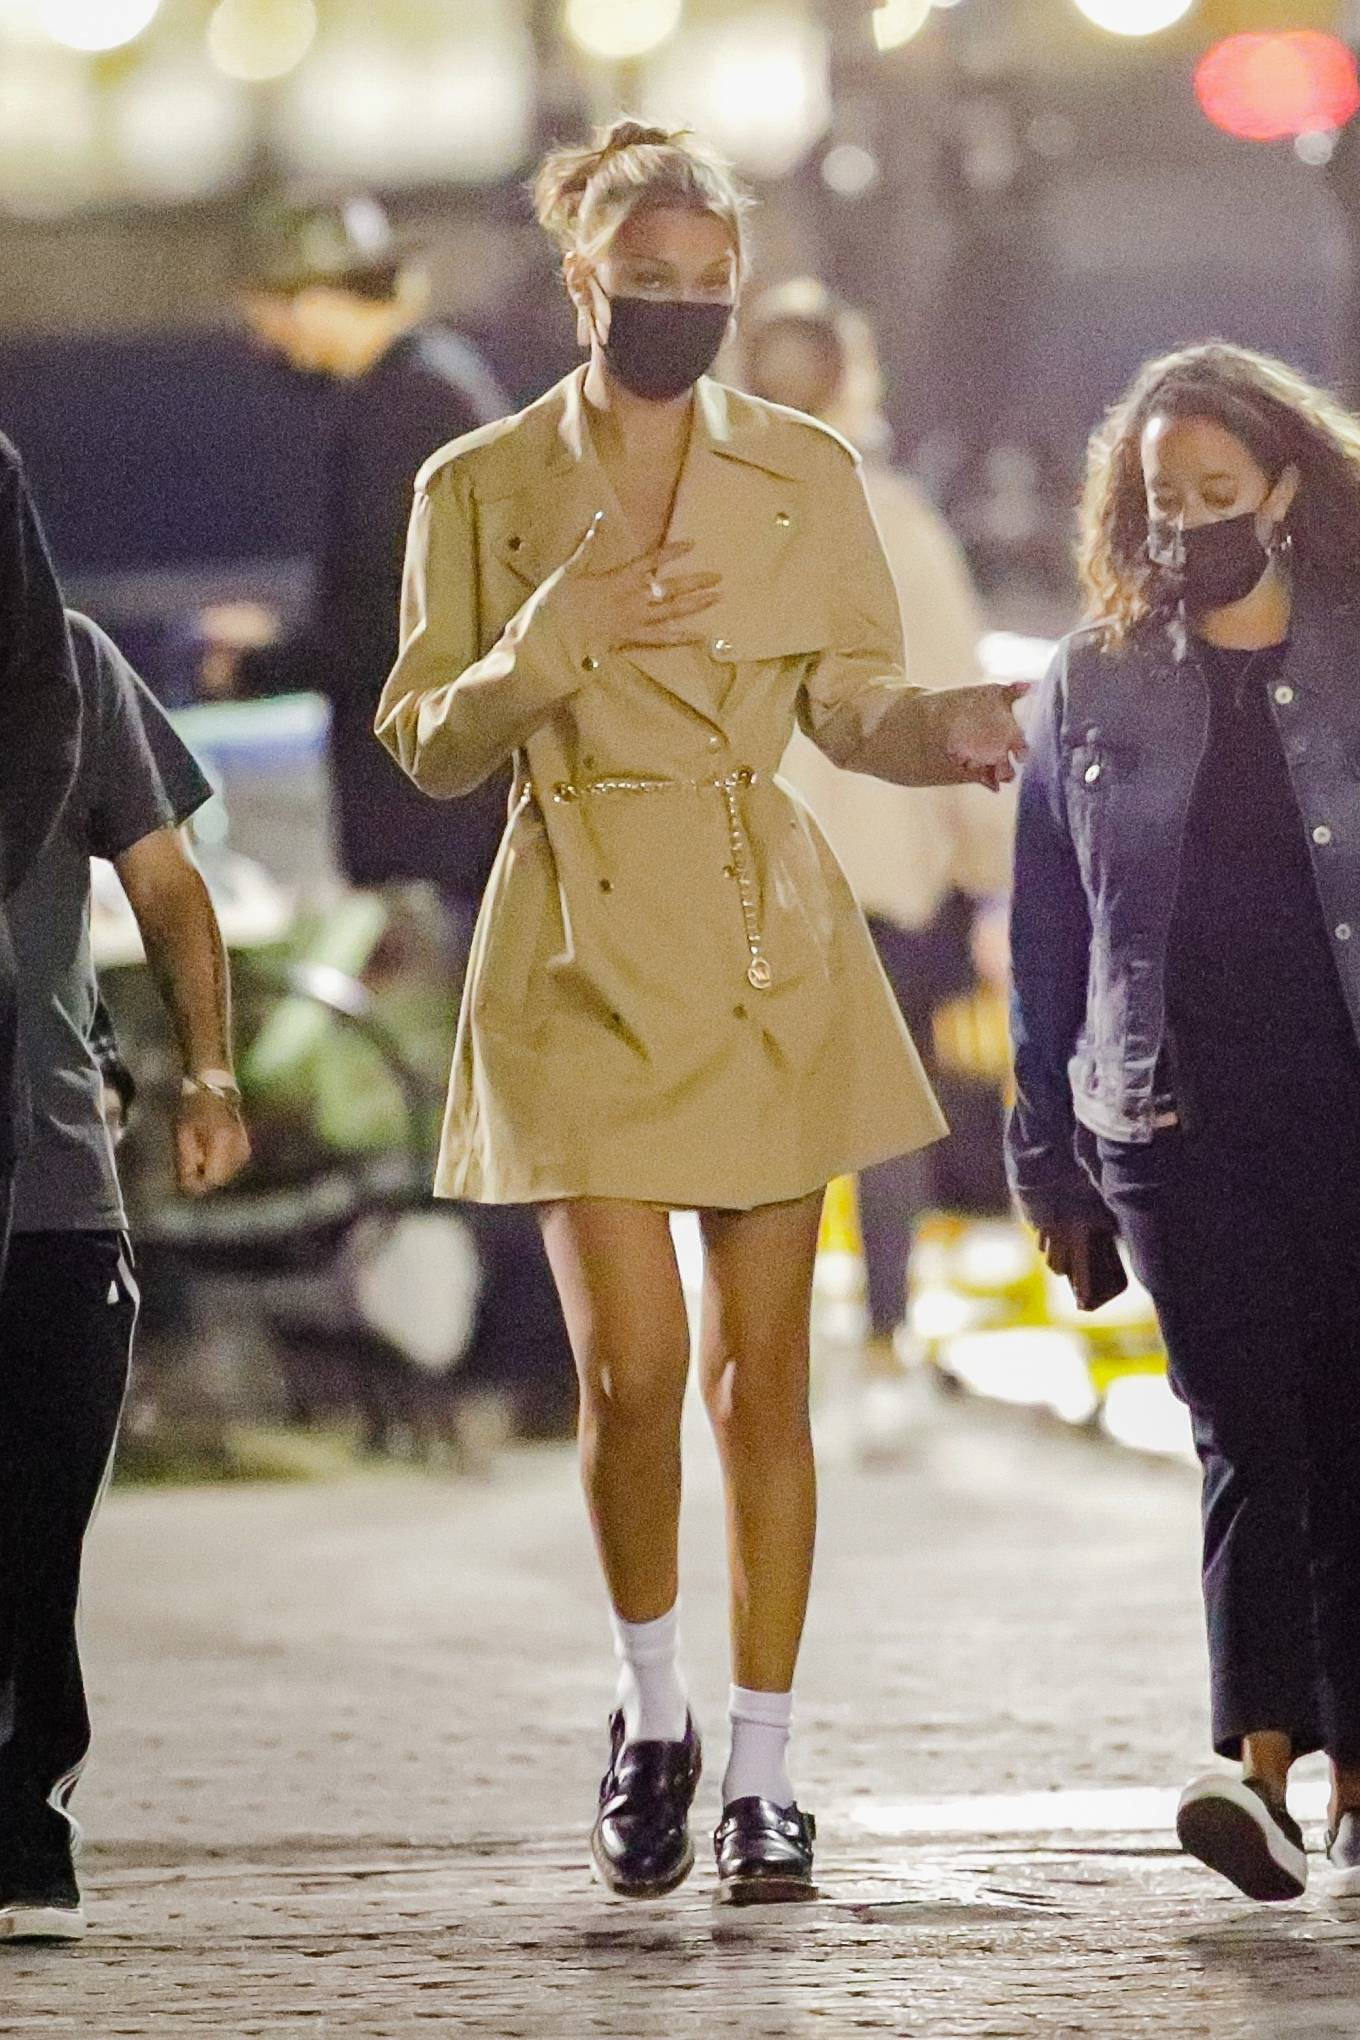 Bella Hadid 2020 : Bella Hadid – Looks chic while out in New York-28